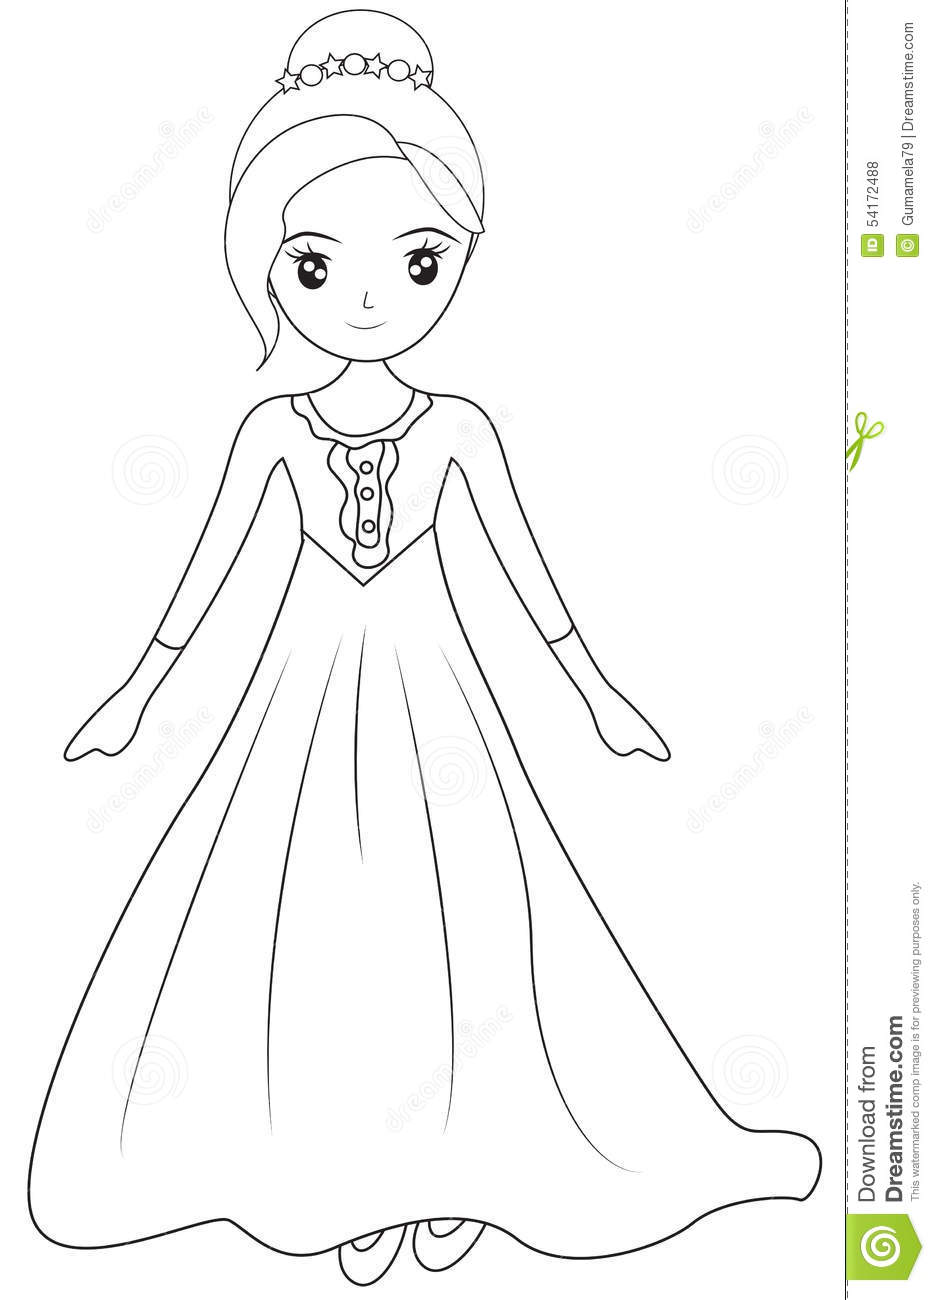 Gown coloring #1, Download drawings